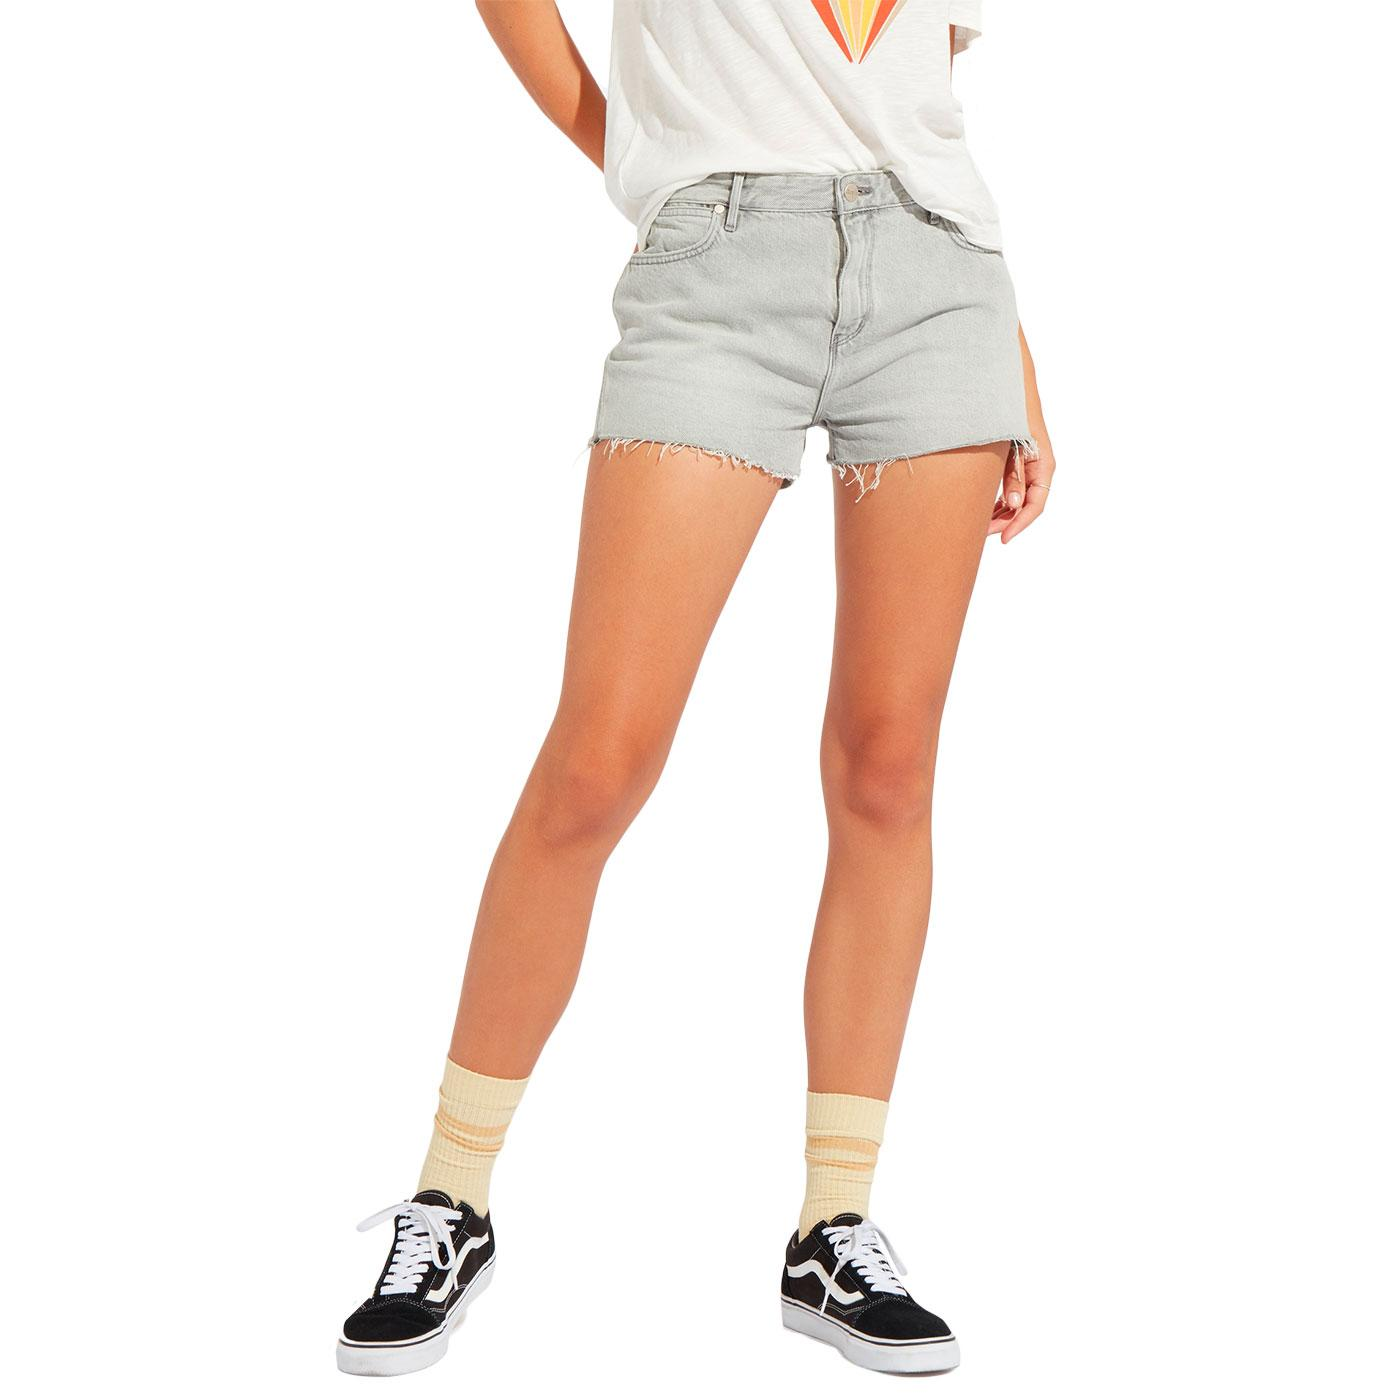 WRANGLER Women's Retro Boyfriend Shorts (Icy Grey)